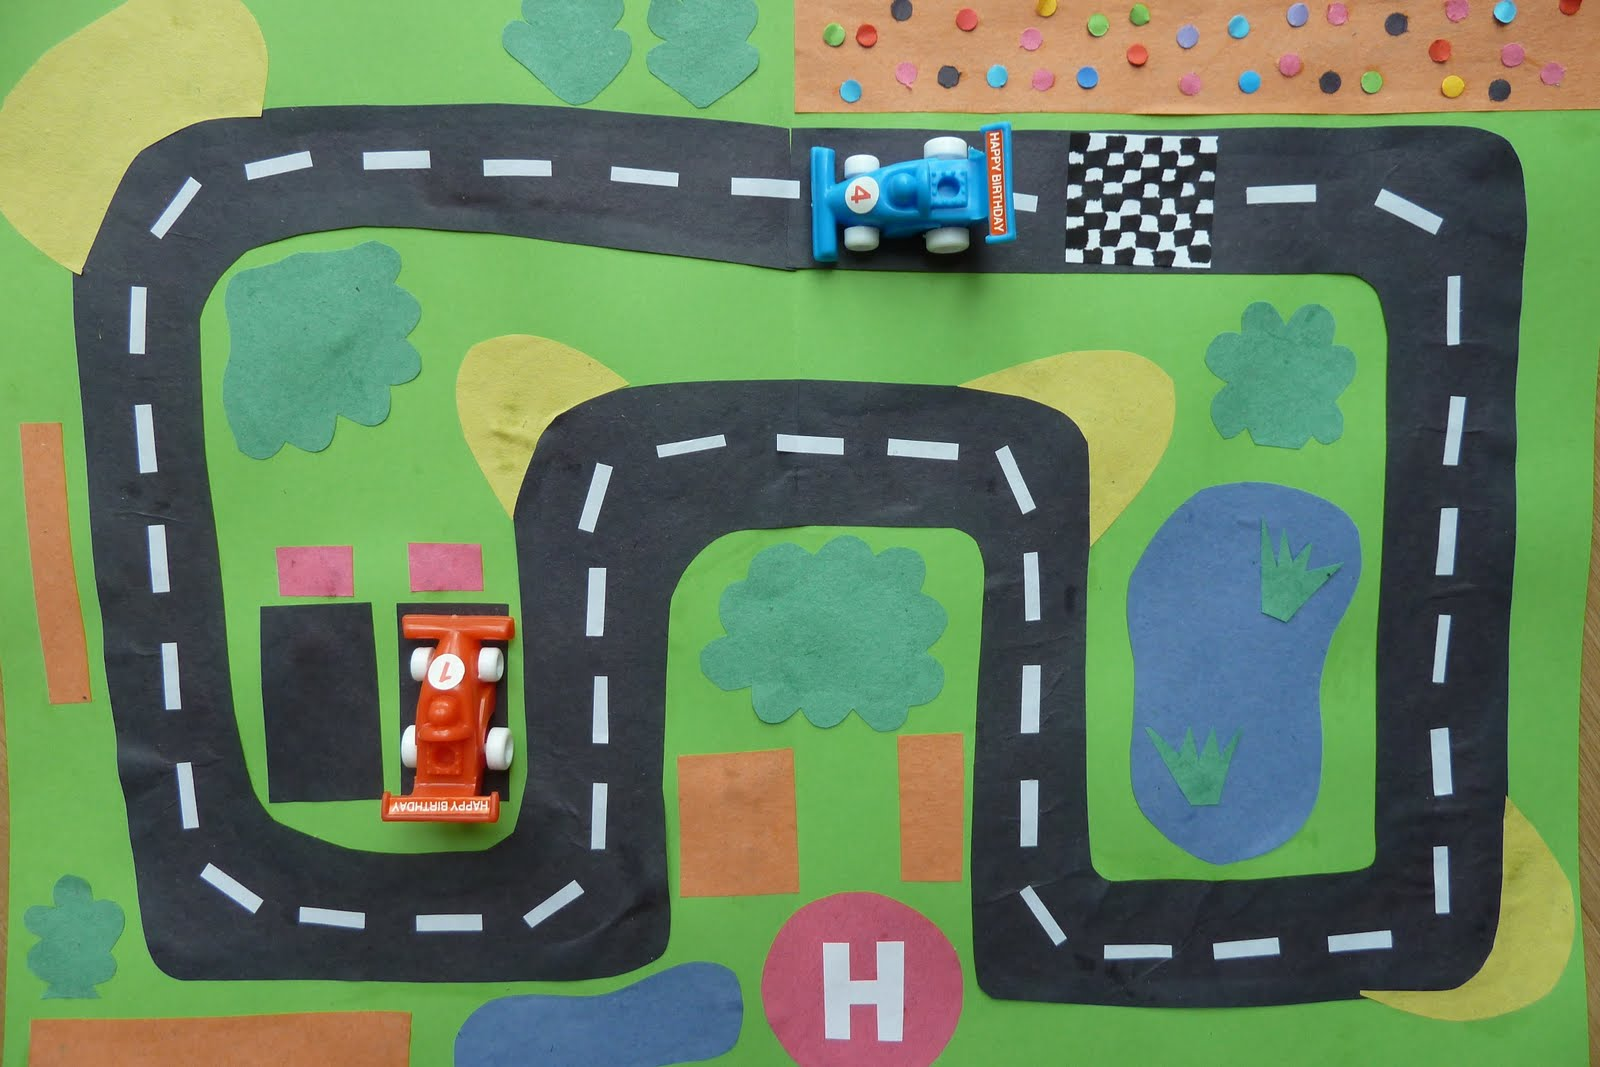 Simple Car Racing Games For Kids